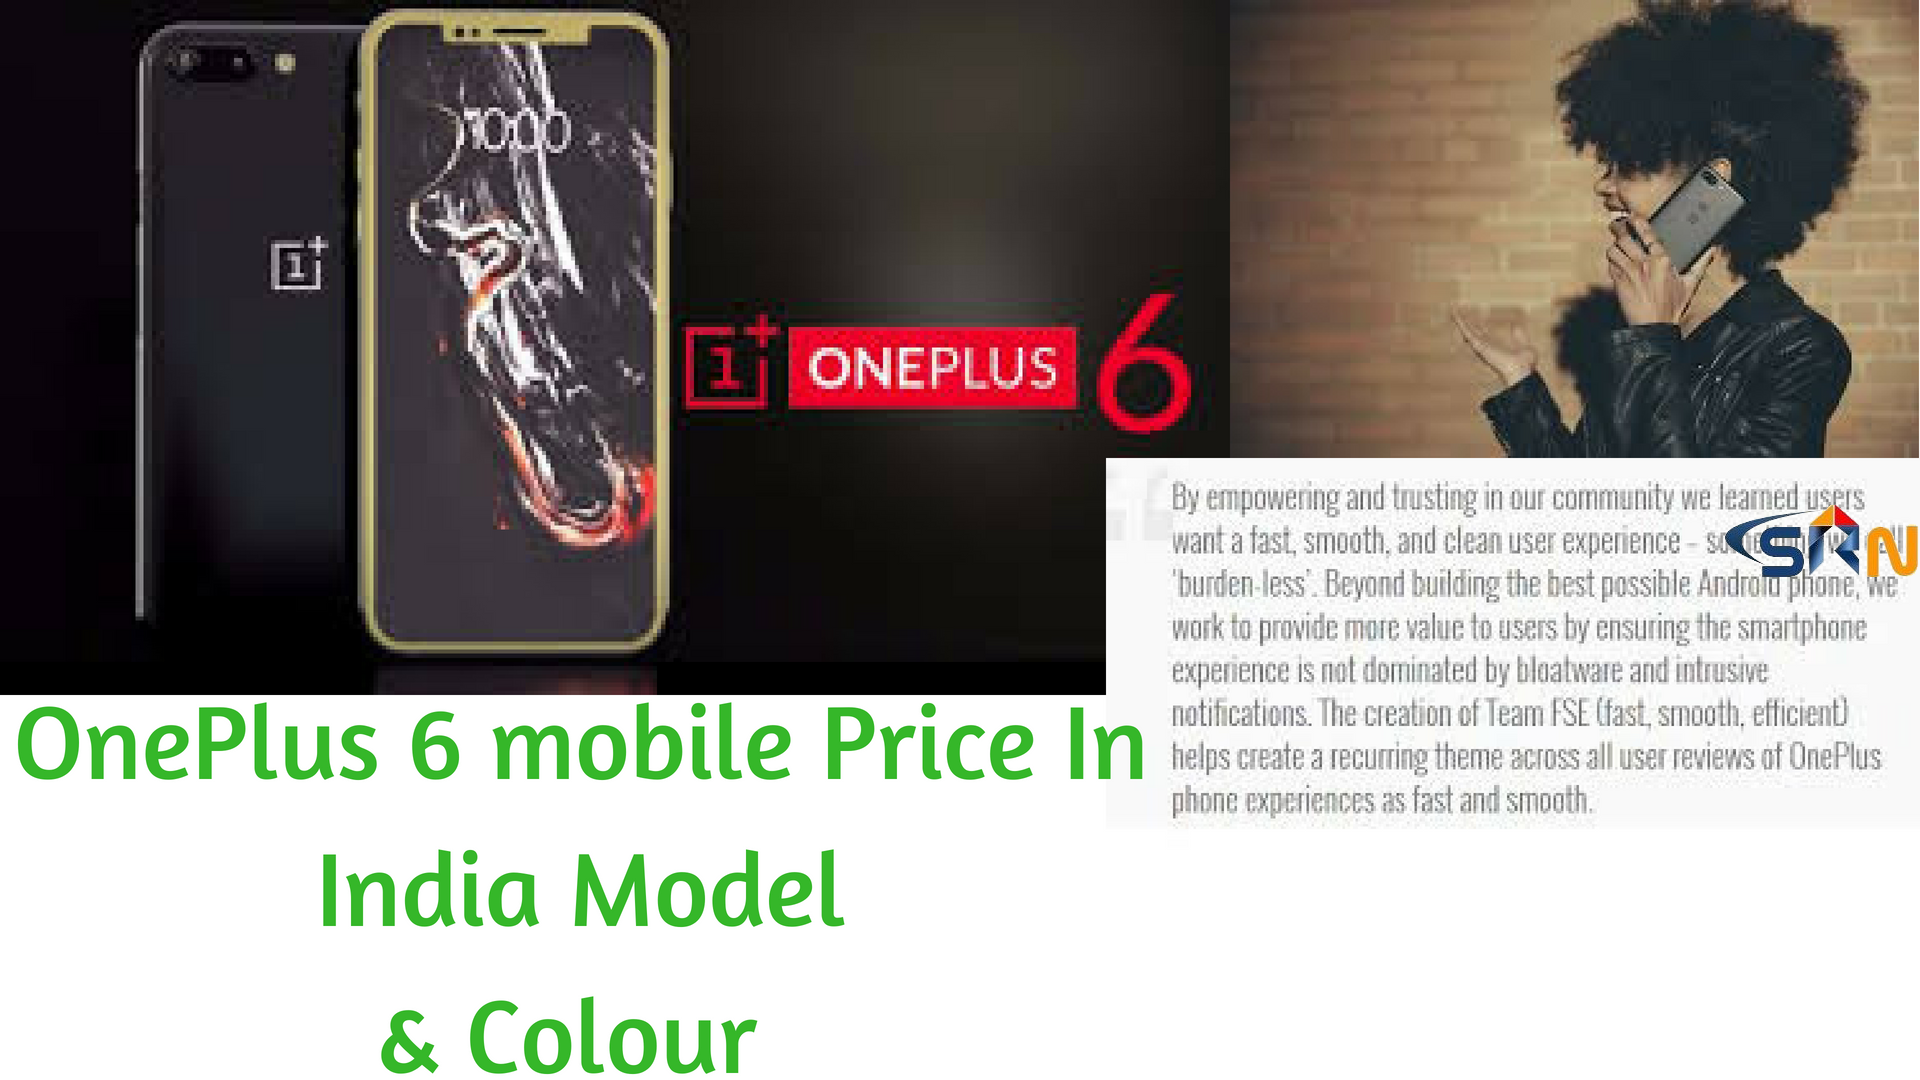 OnePlus 6 mobile Price in India  Model  Colour